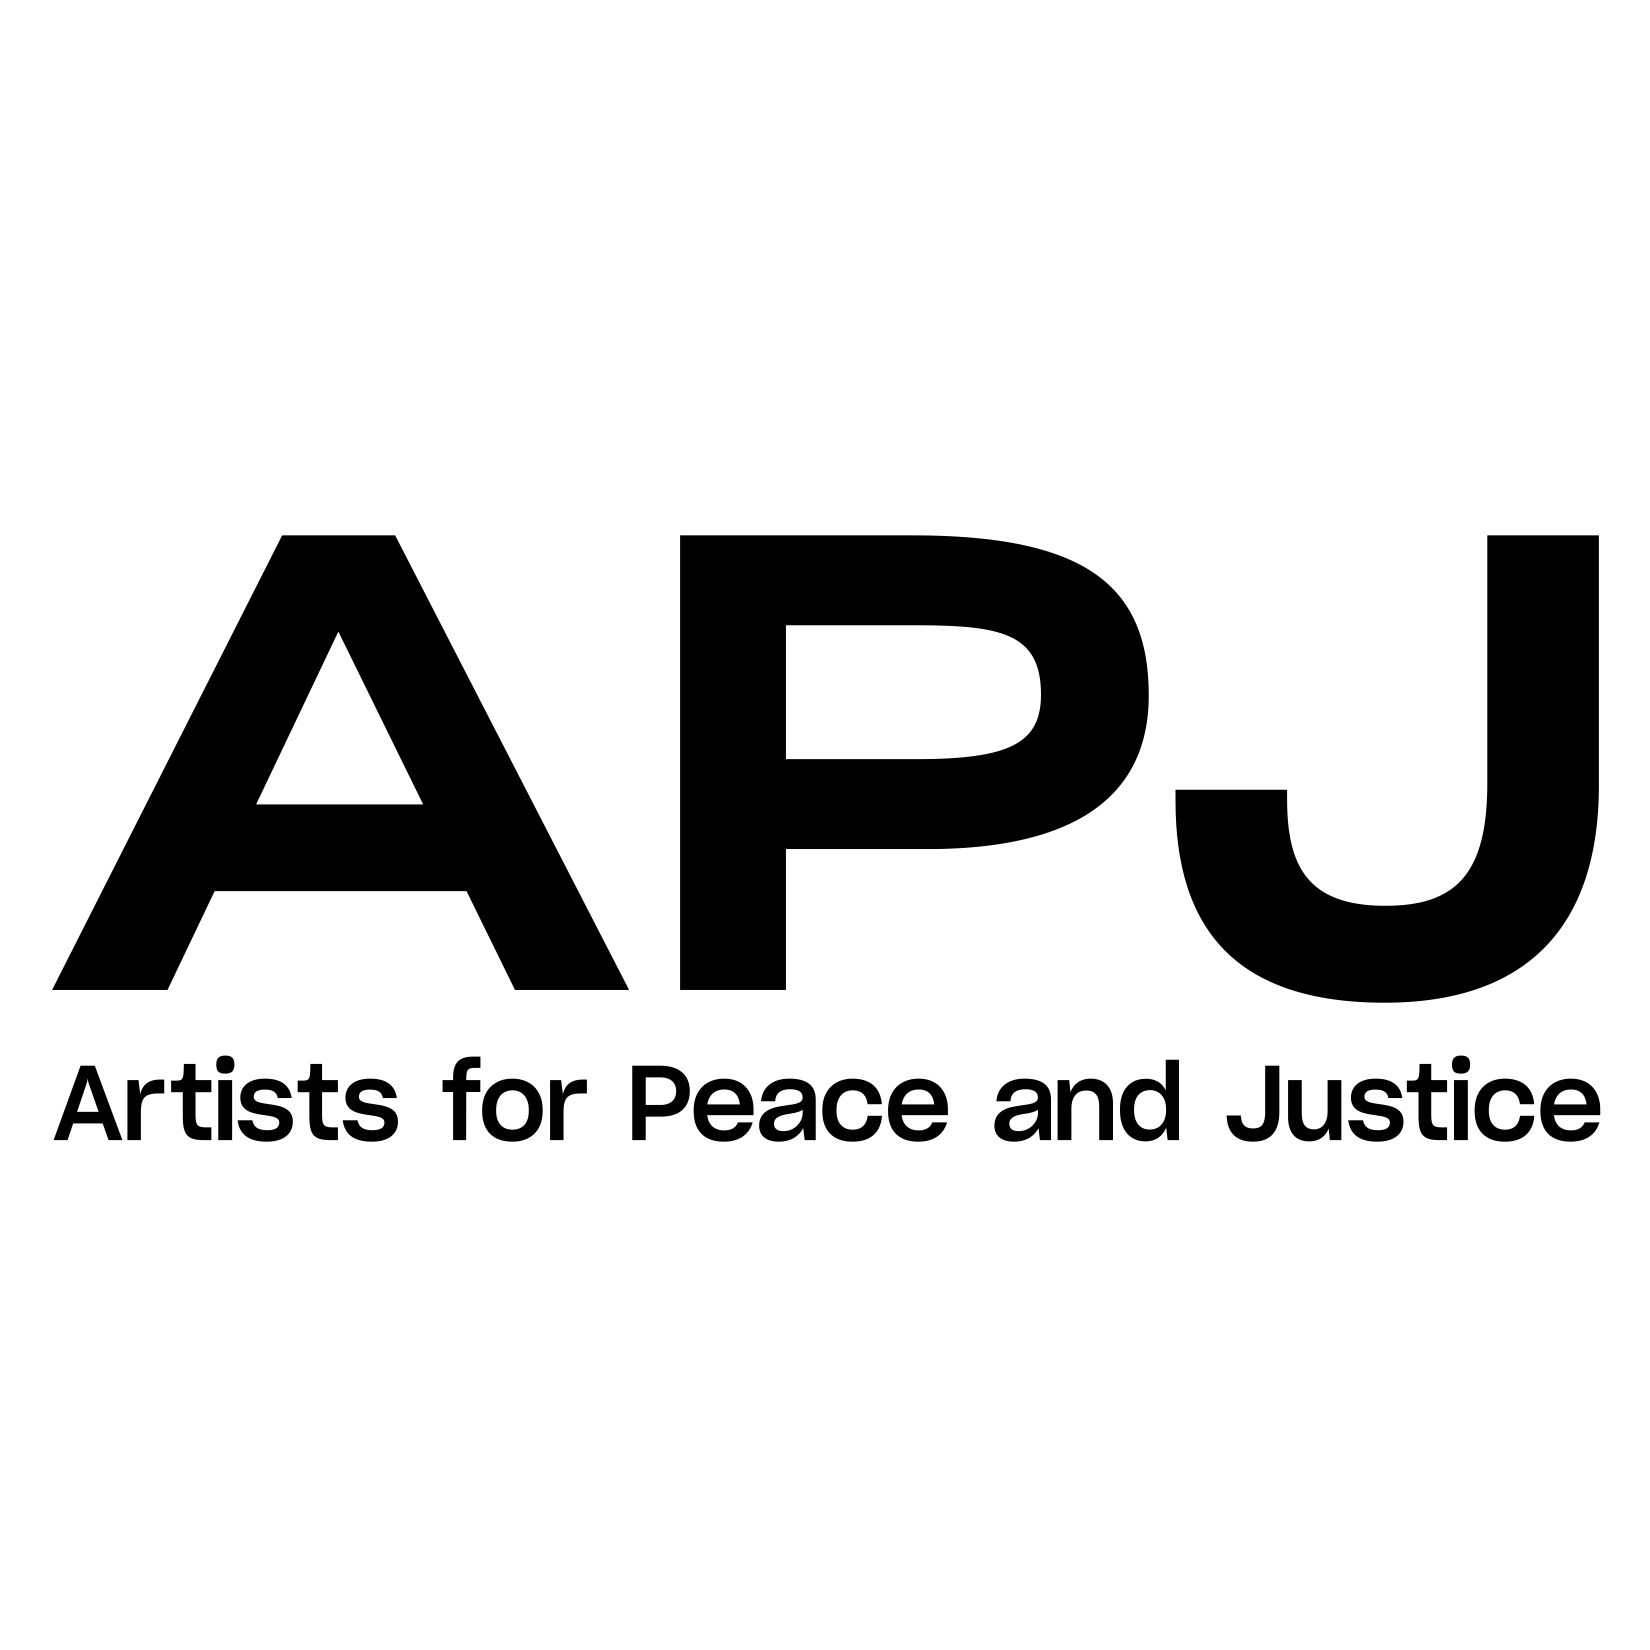 Back to Our Roots: The 11th Annual Artists for Peace and